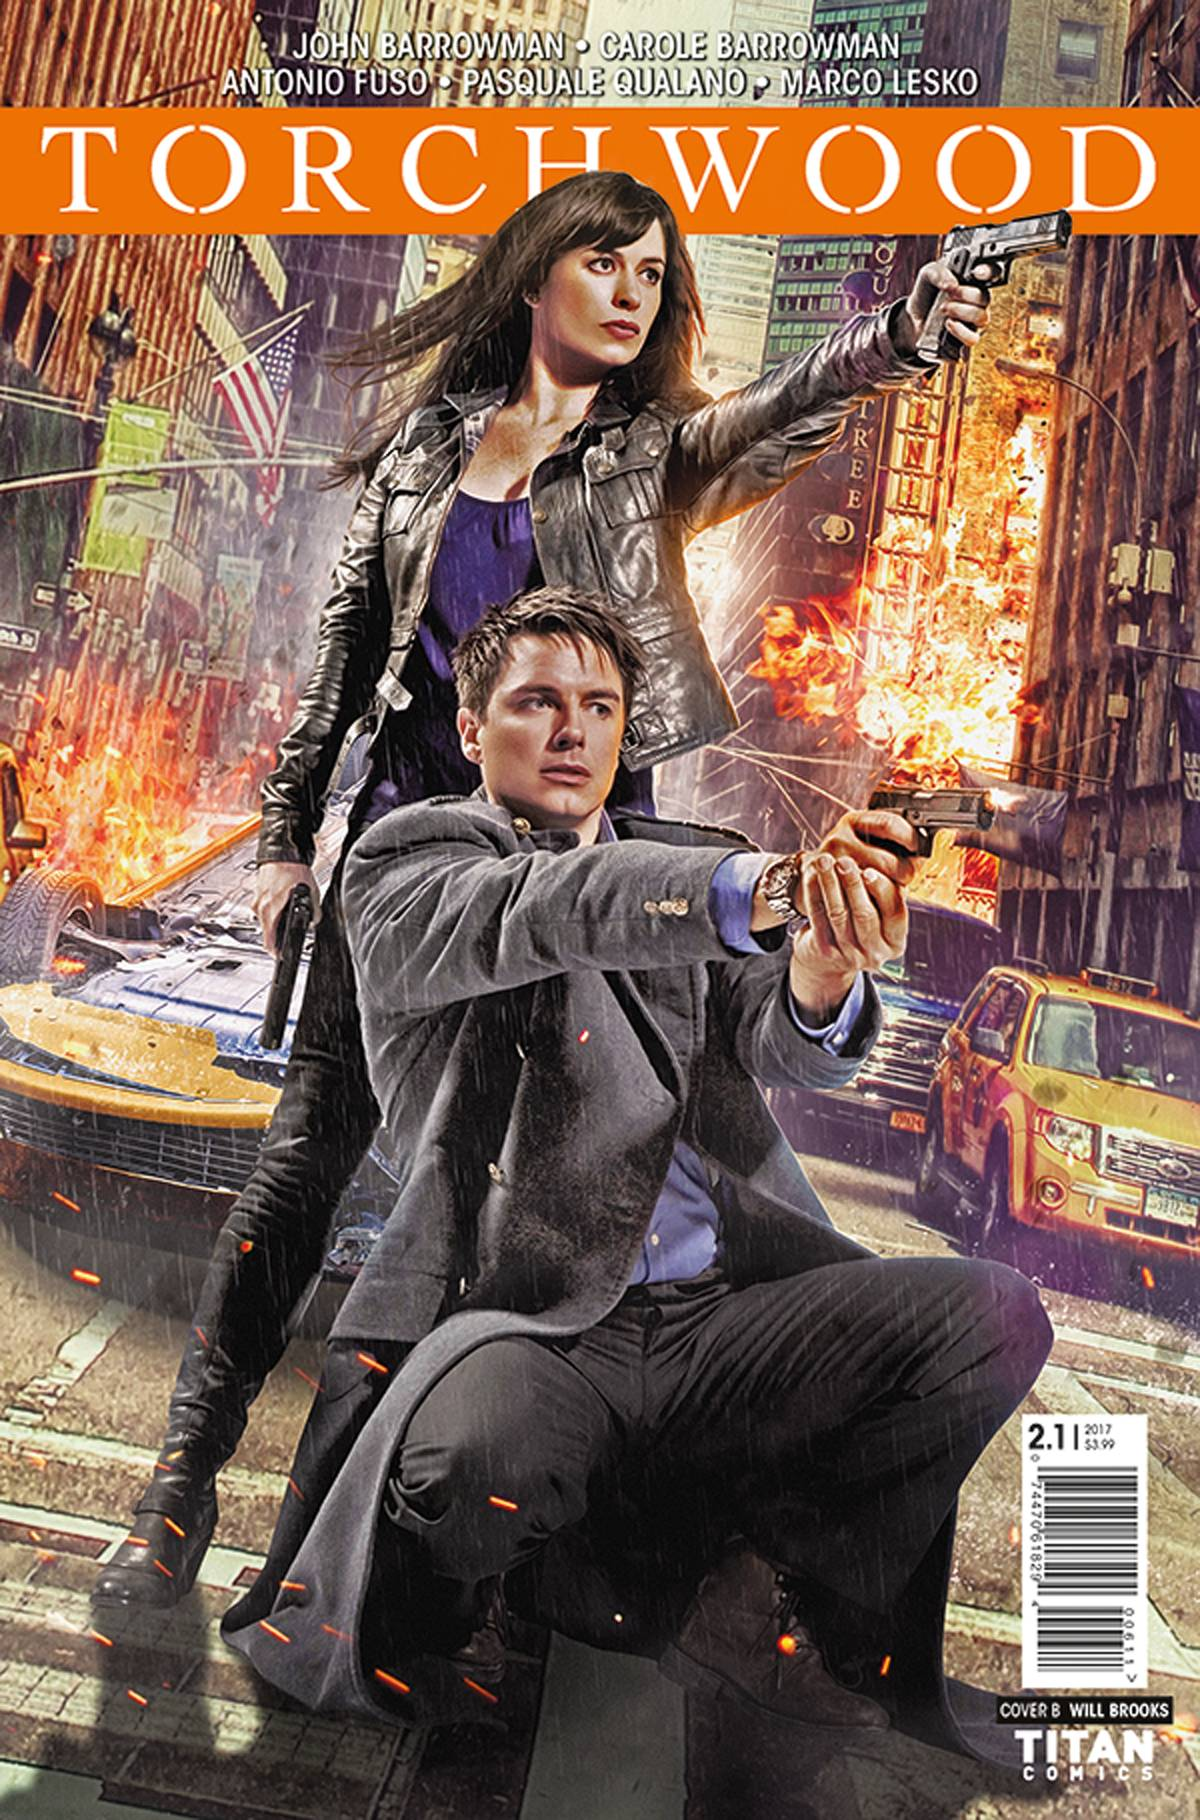 TORCHWOOD 2 #1 CVR B PHOTO